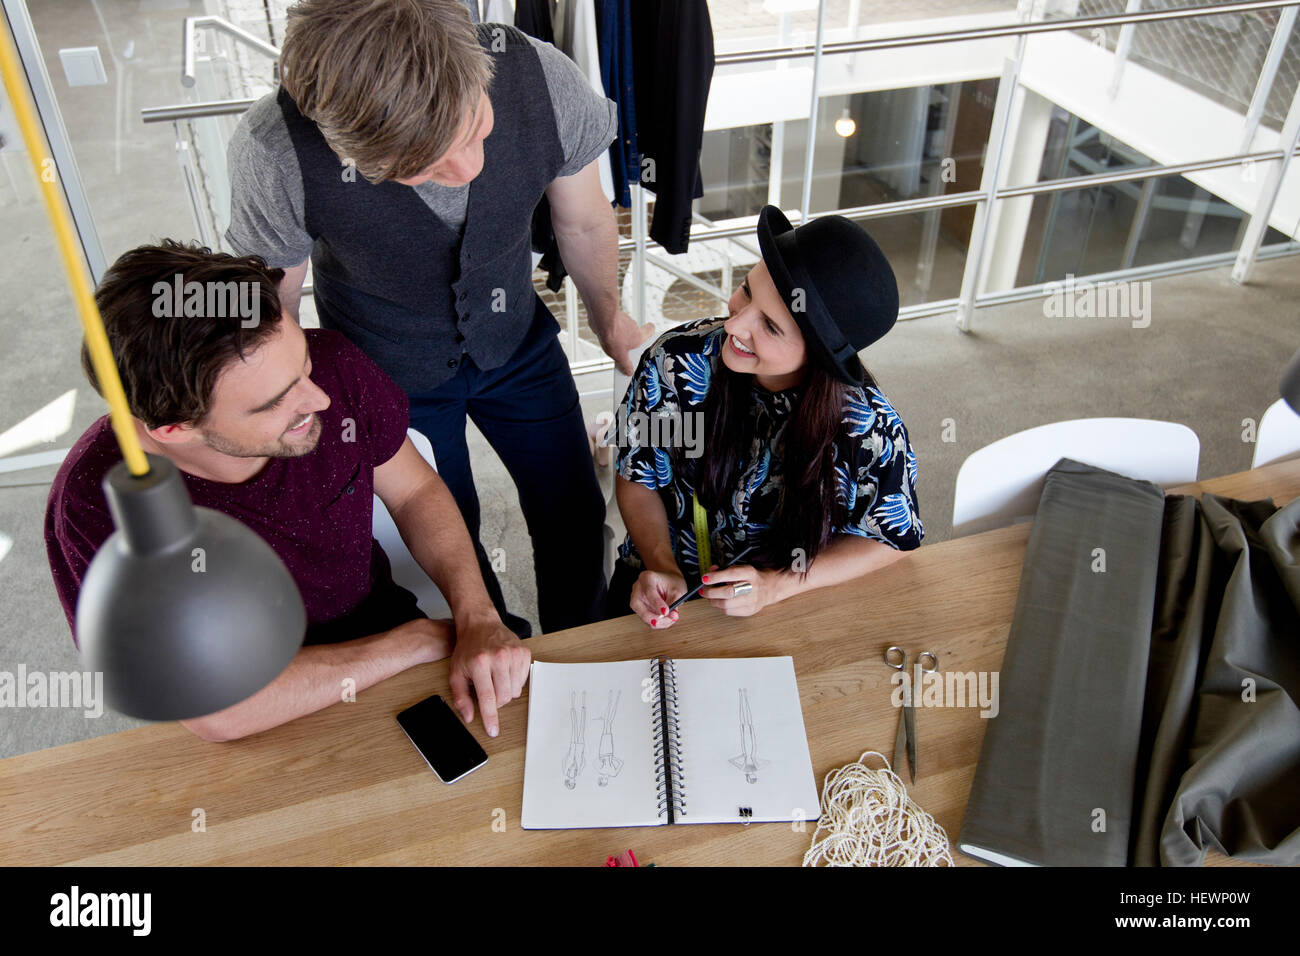 Colleagues at desk discussing fashion designs - Stock Image